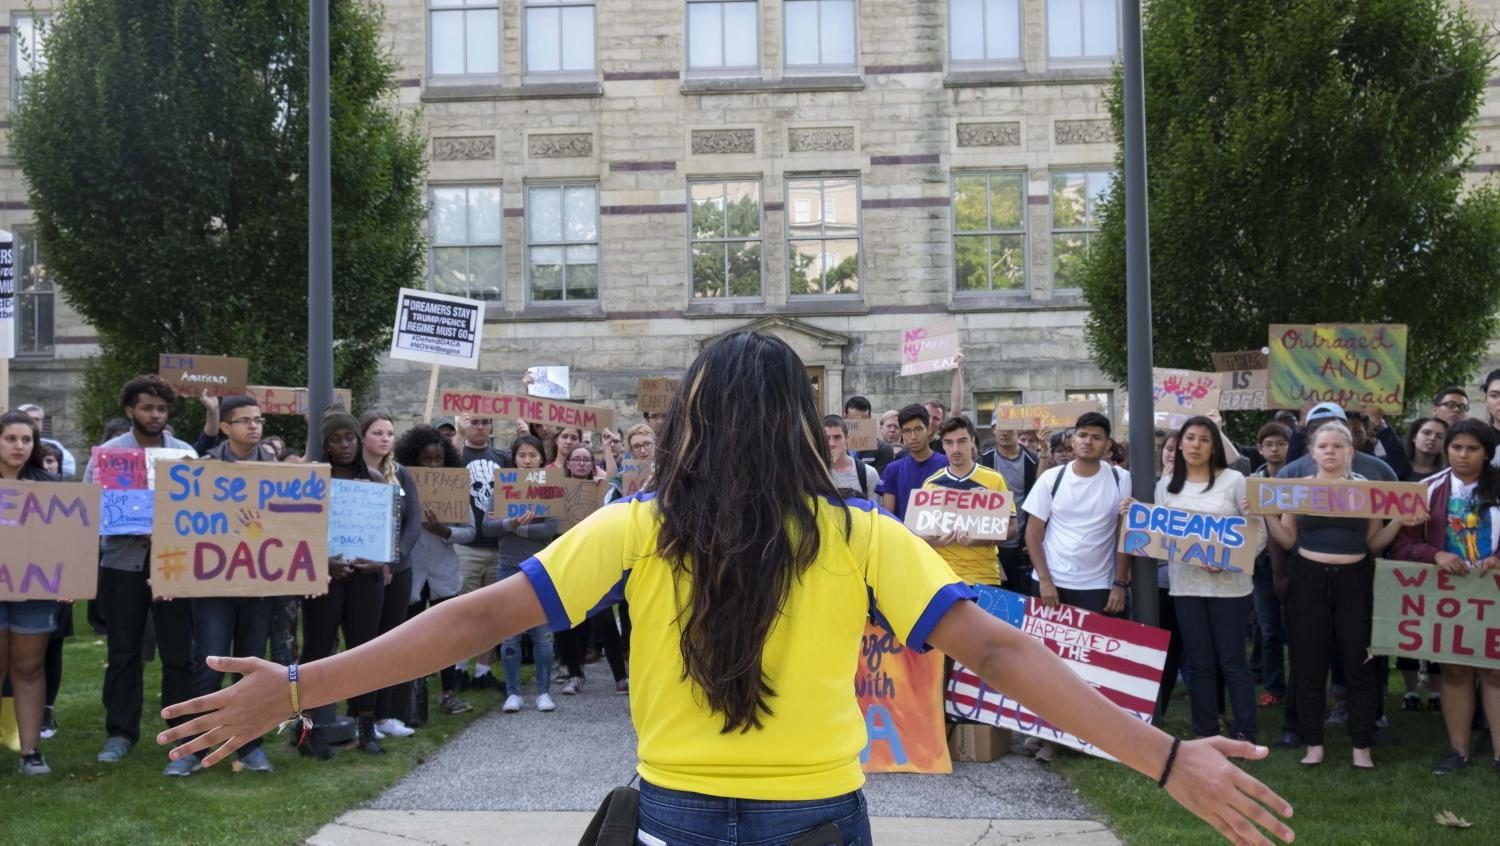 The DACA program, providing legal resience to undocumented immigrant youth for up to two years, was repealed earlier this week. CWRU administration has come out in support of DACA.